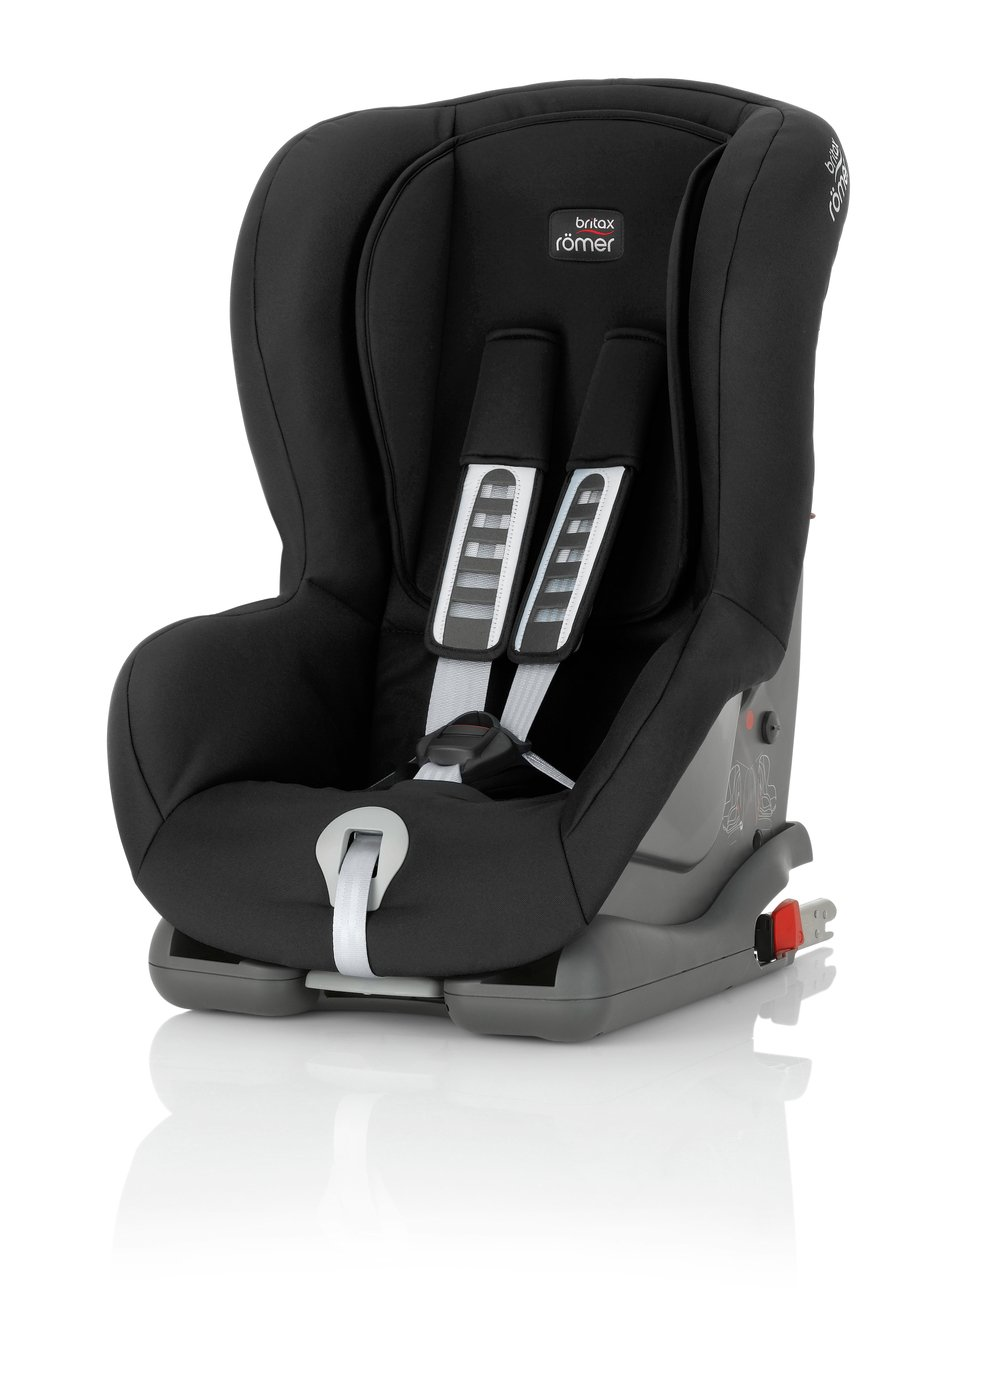 Image of Britax Romer DUO PLUS Group 1 Car Seat - Cosmos Black